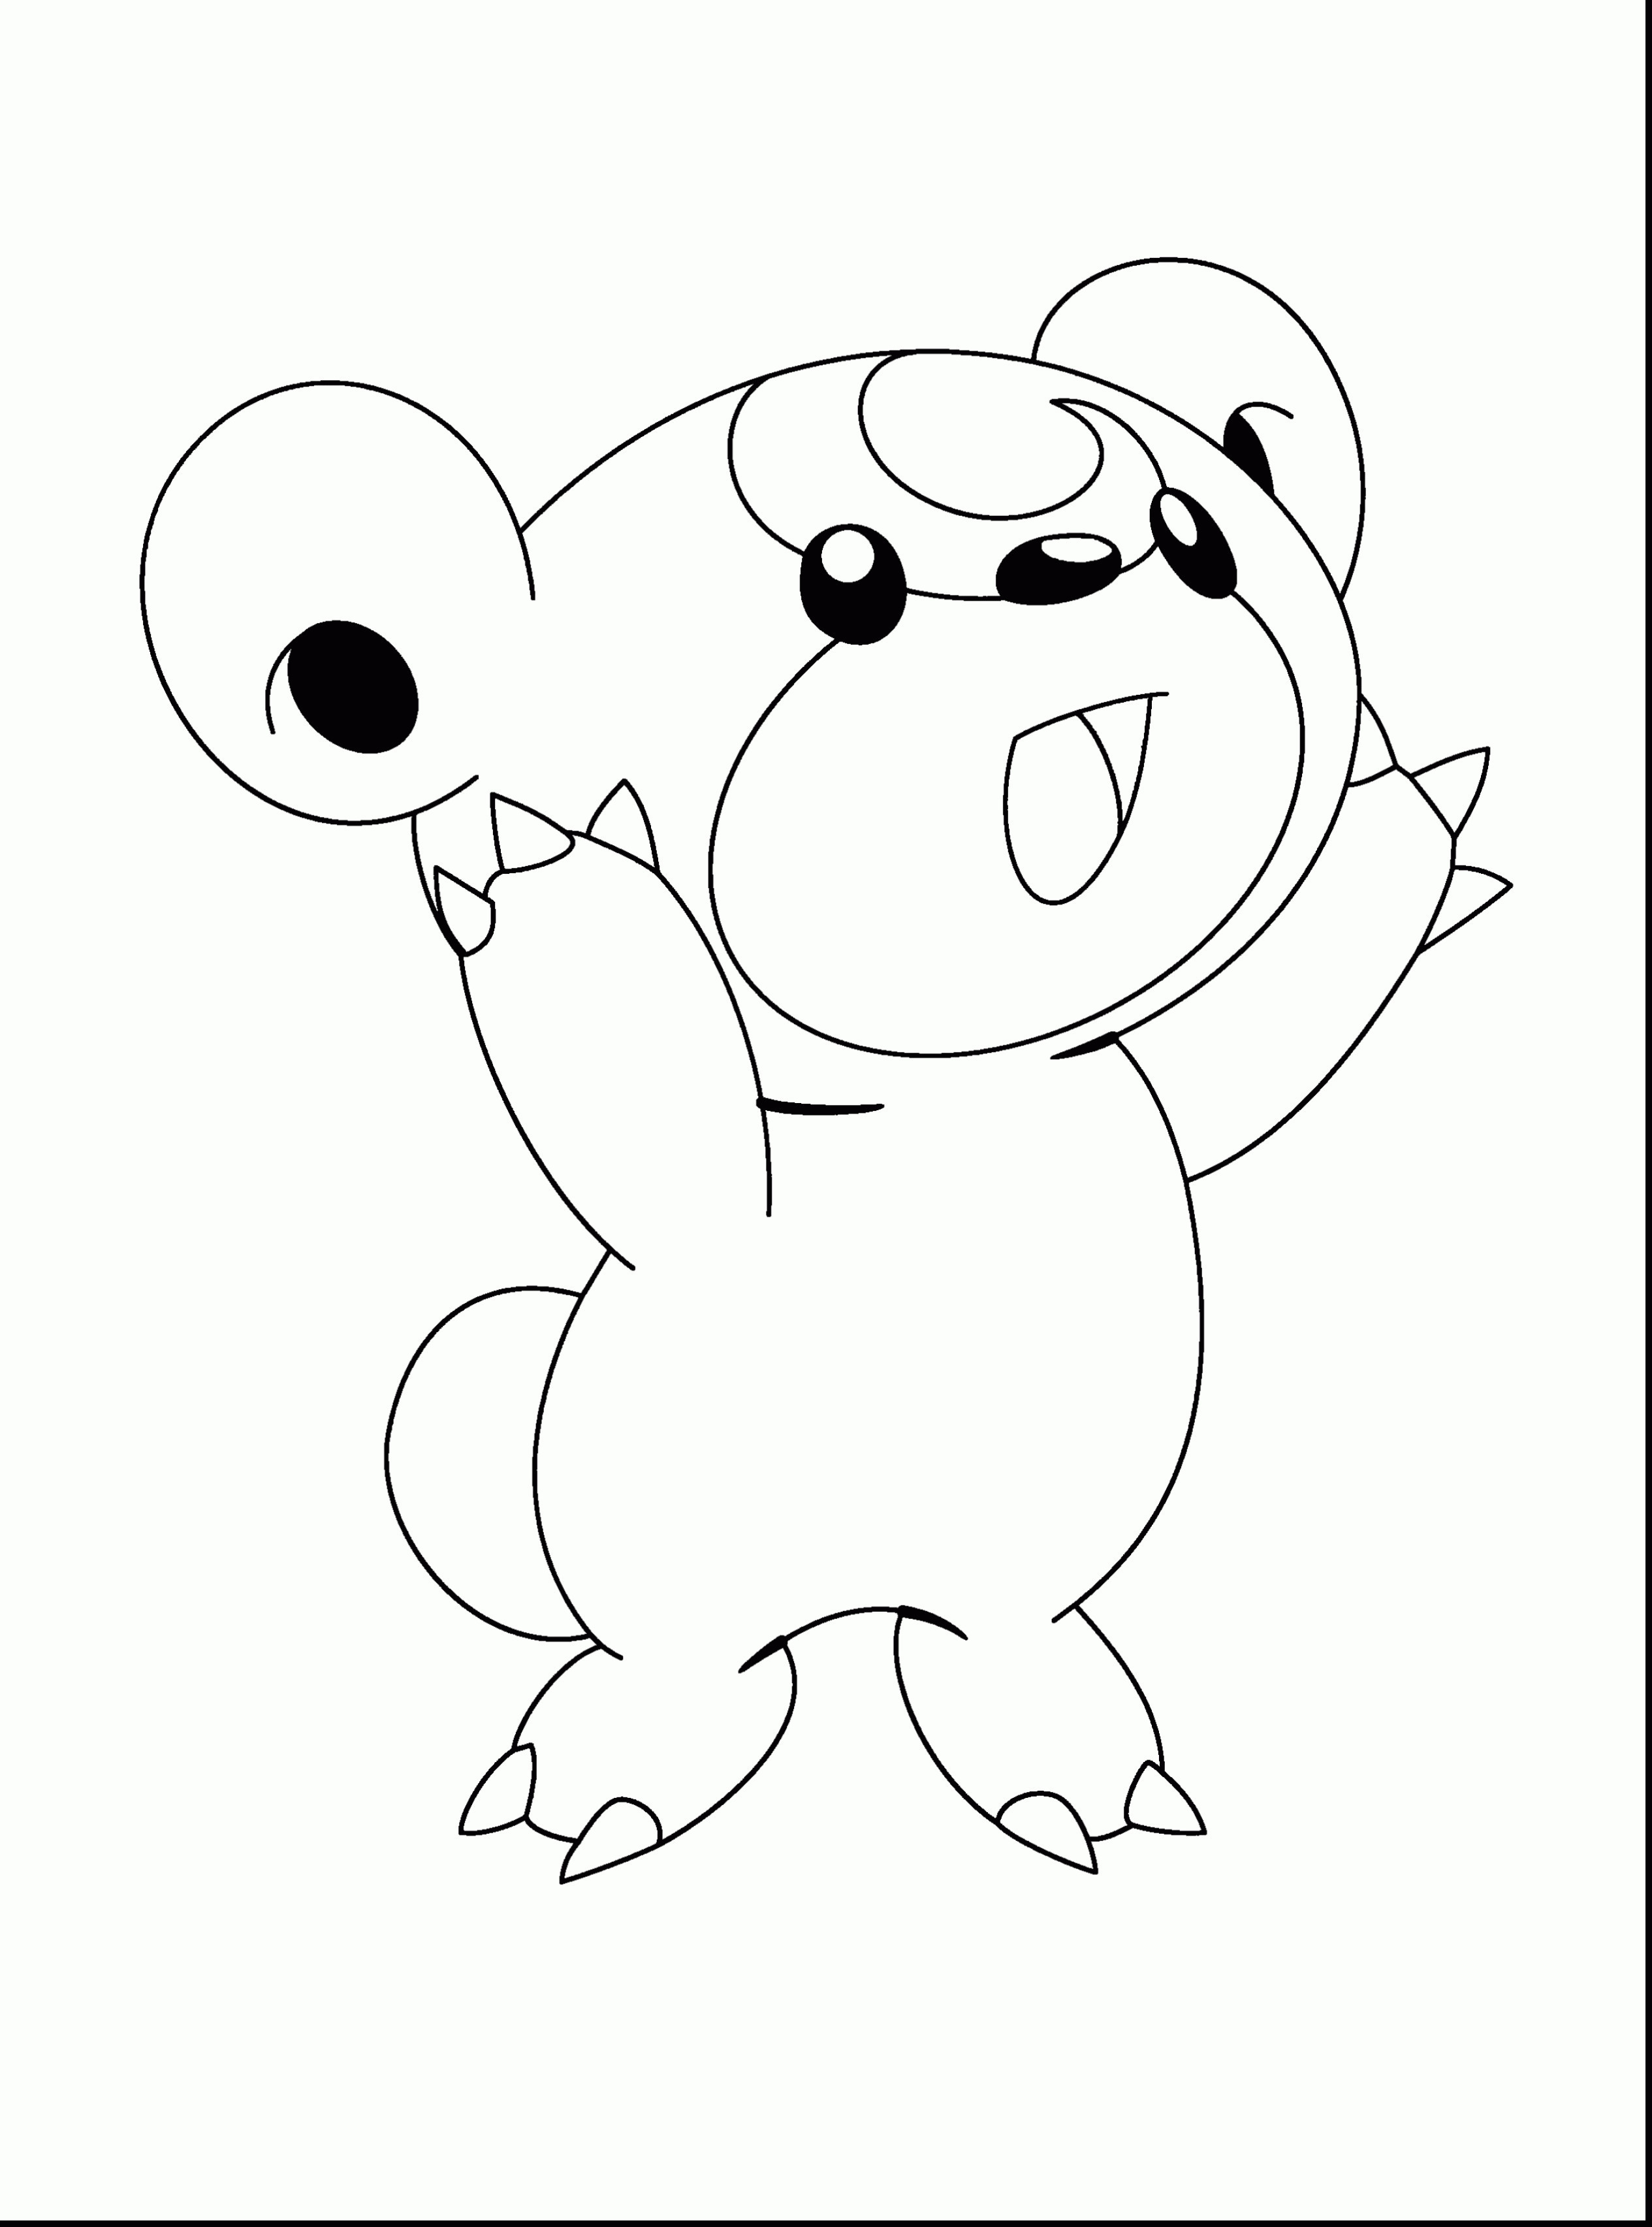 Eevee Coloring Pages 23 Pokemon